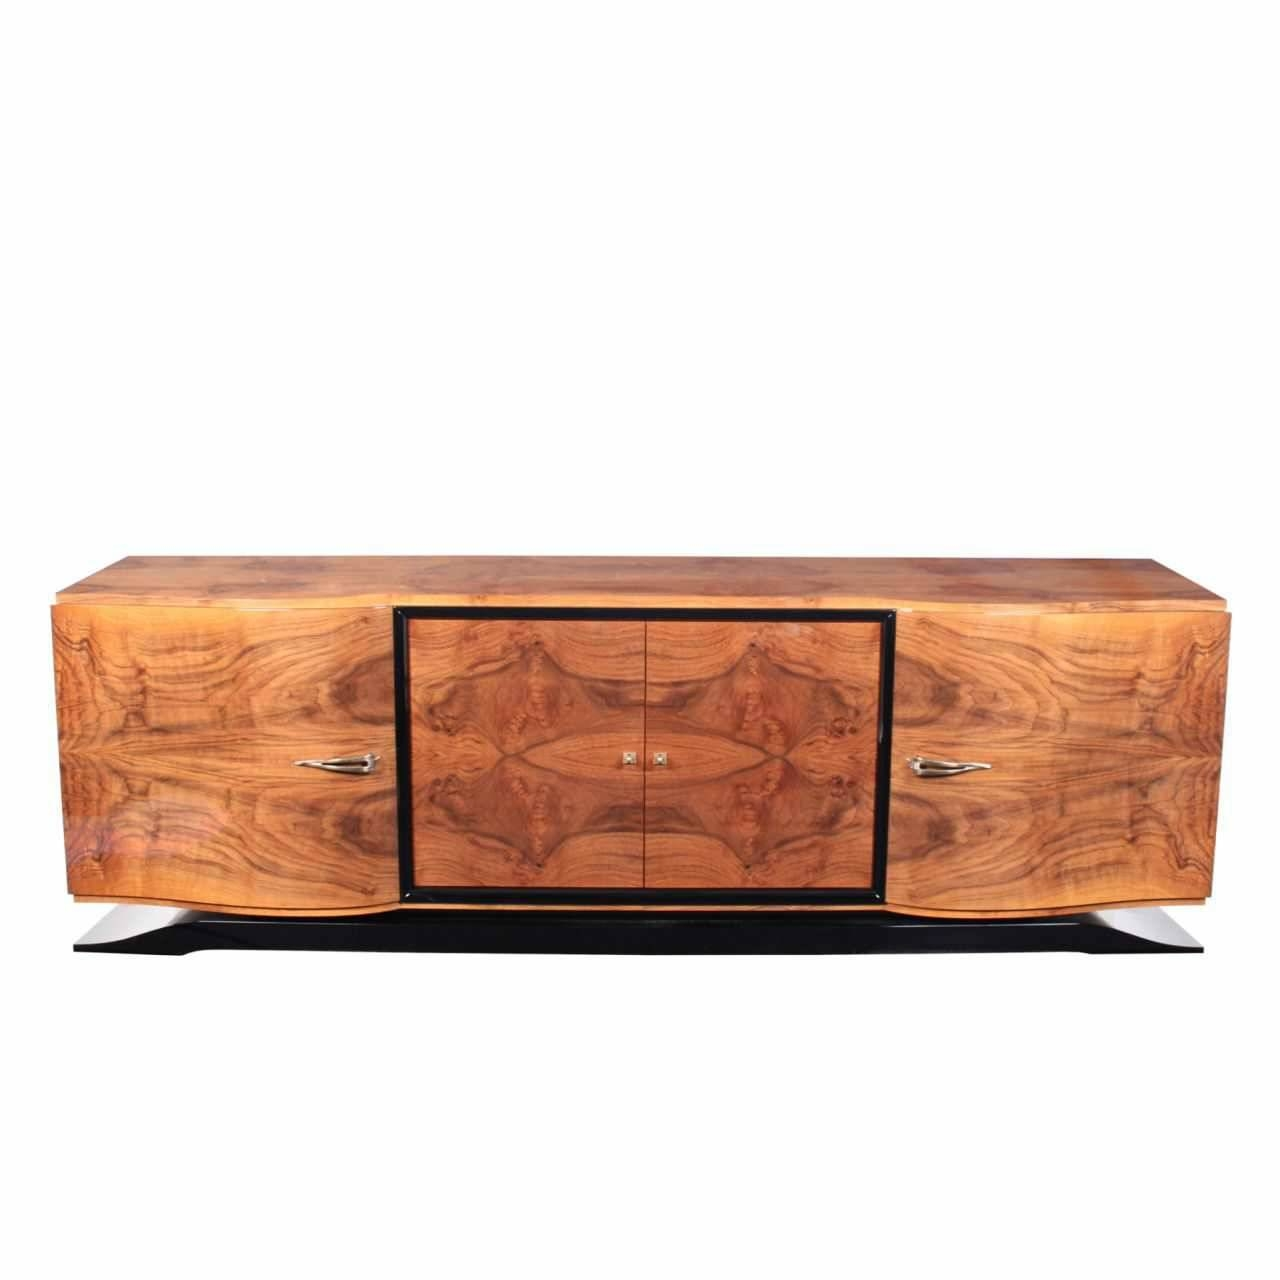 Art Deco Sideboard / Rosewood / Glossy Lacquered Wood – Sb001 Pertaining To Recent Art Deco Sideboards (#3 of 15)